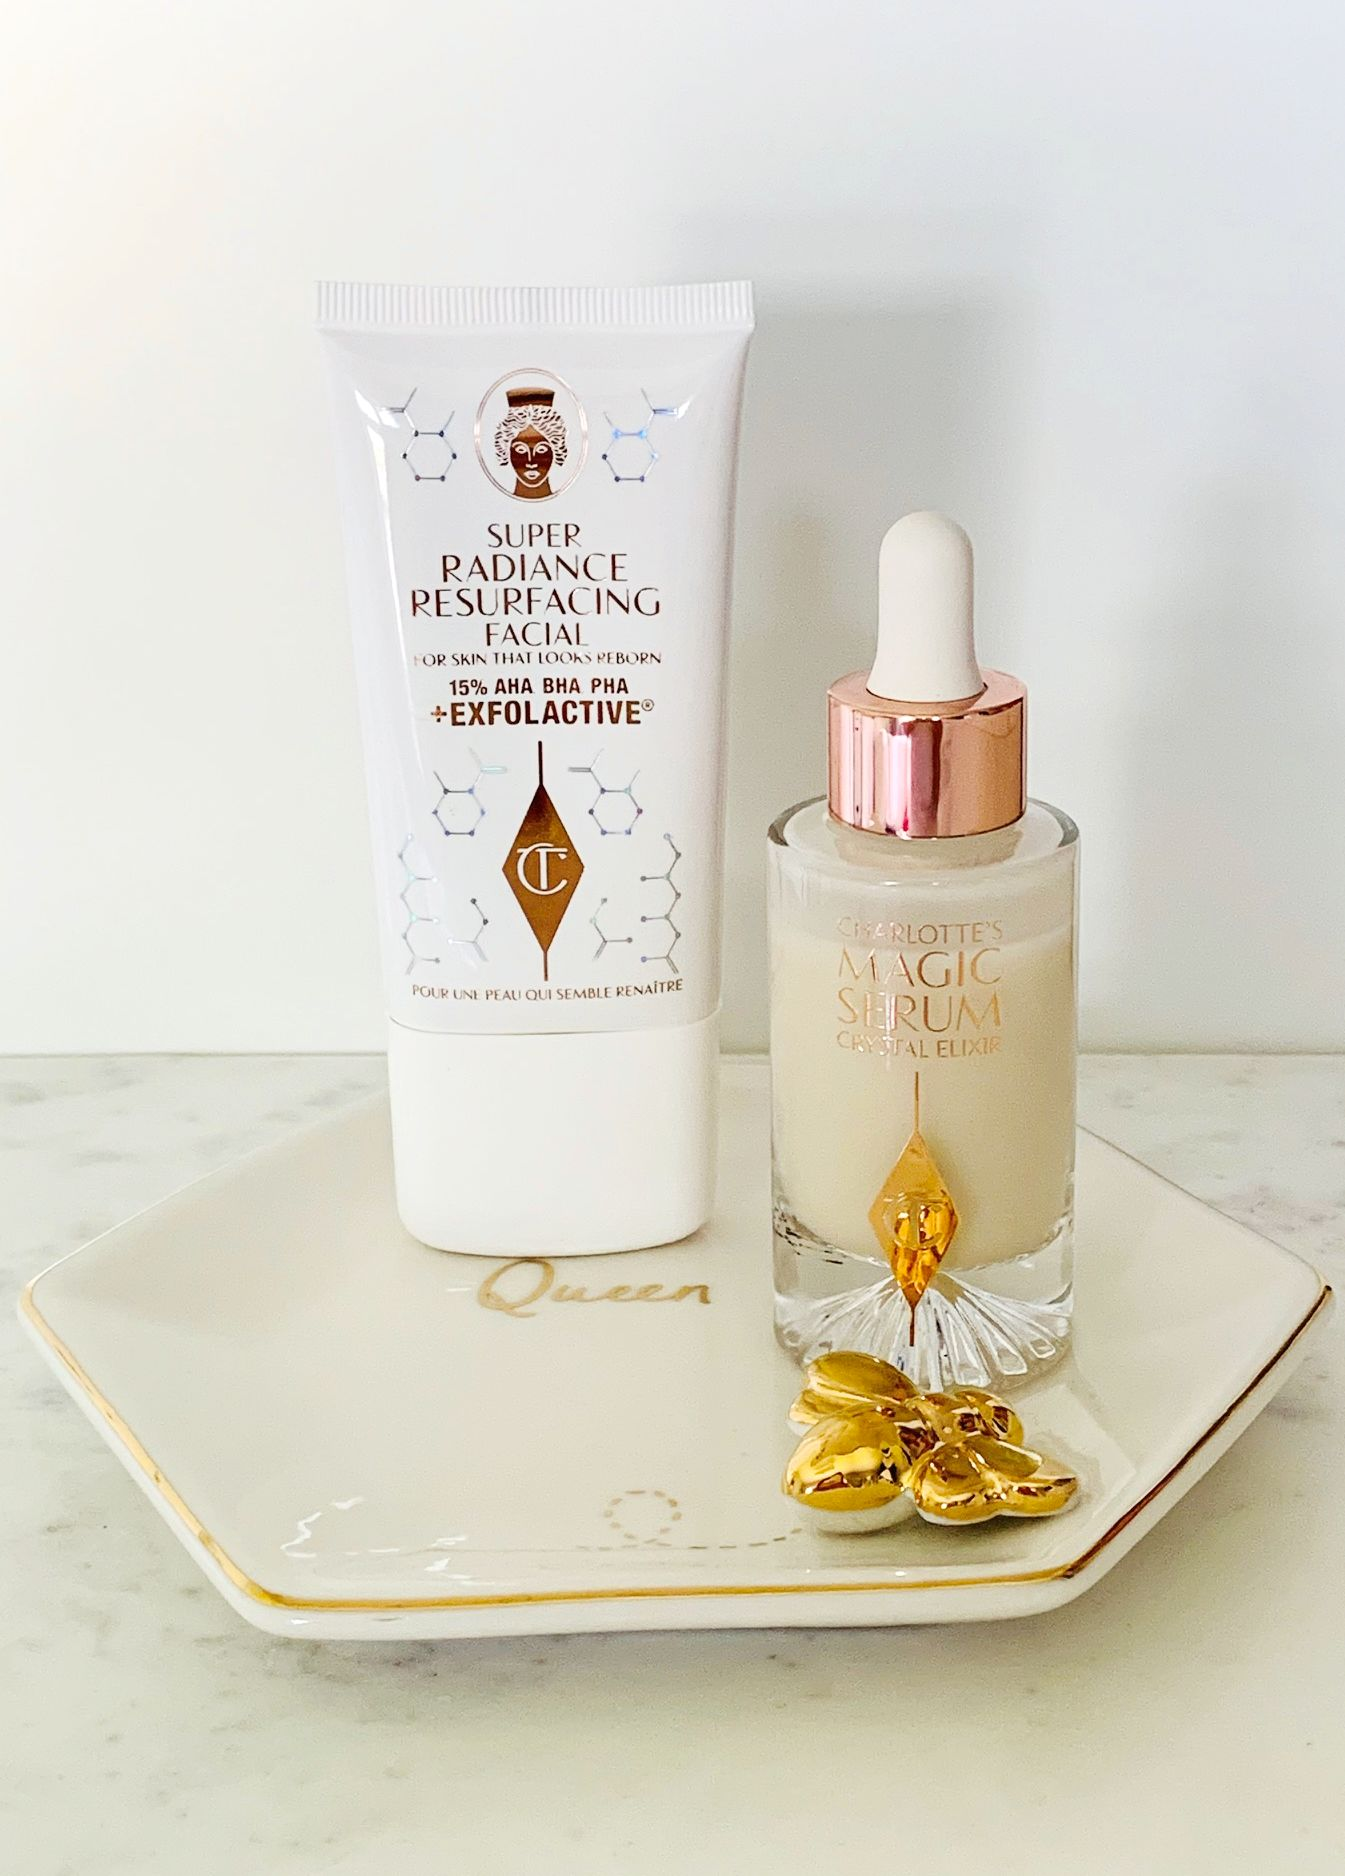 Charlotte Tilbury Super Radiance Resurfacing Facial Review,  Magic Serum Crystal Elixir Review